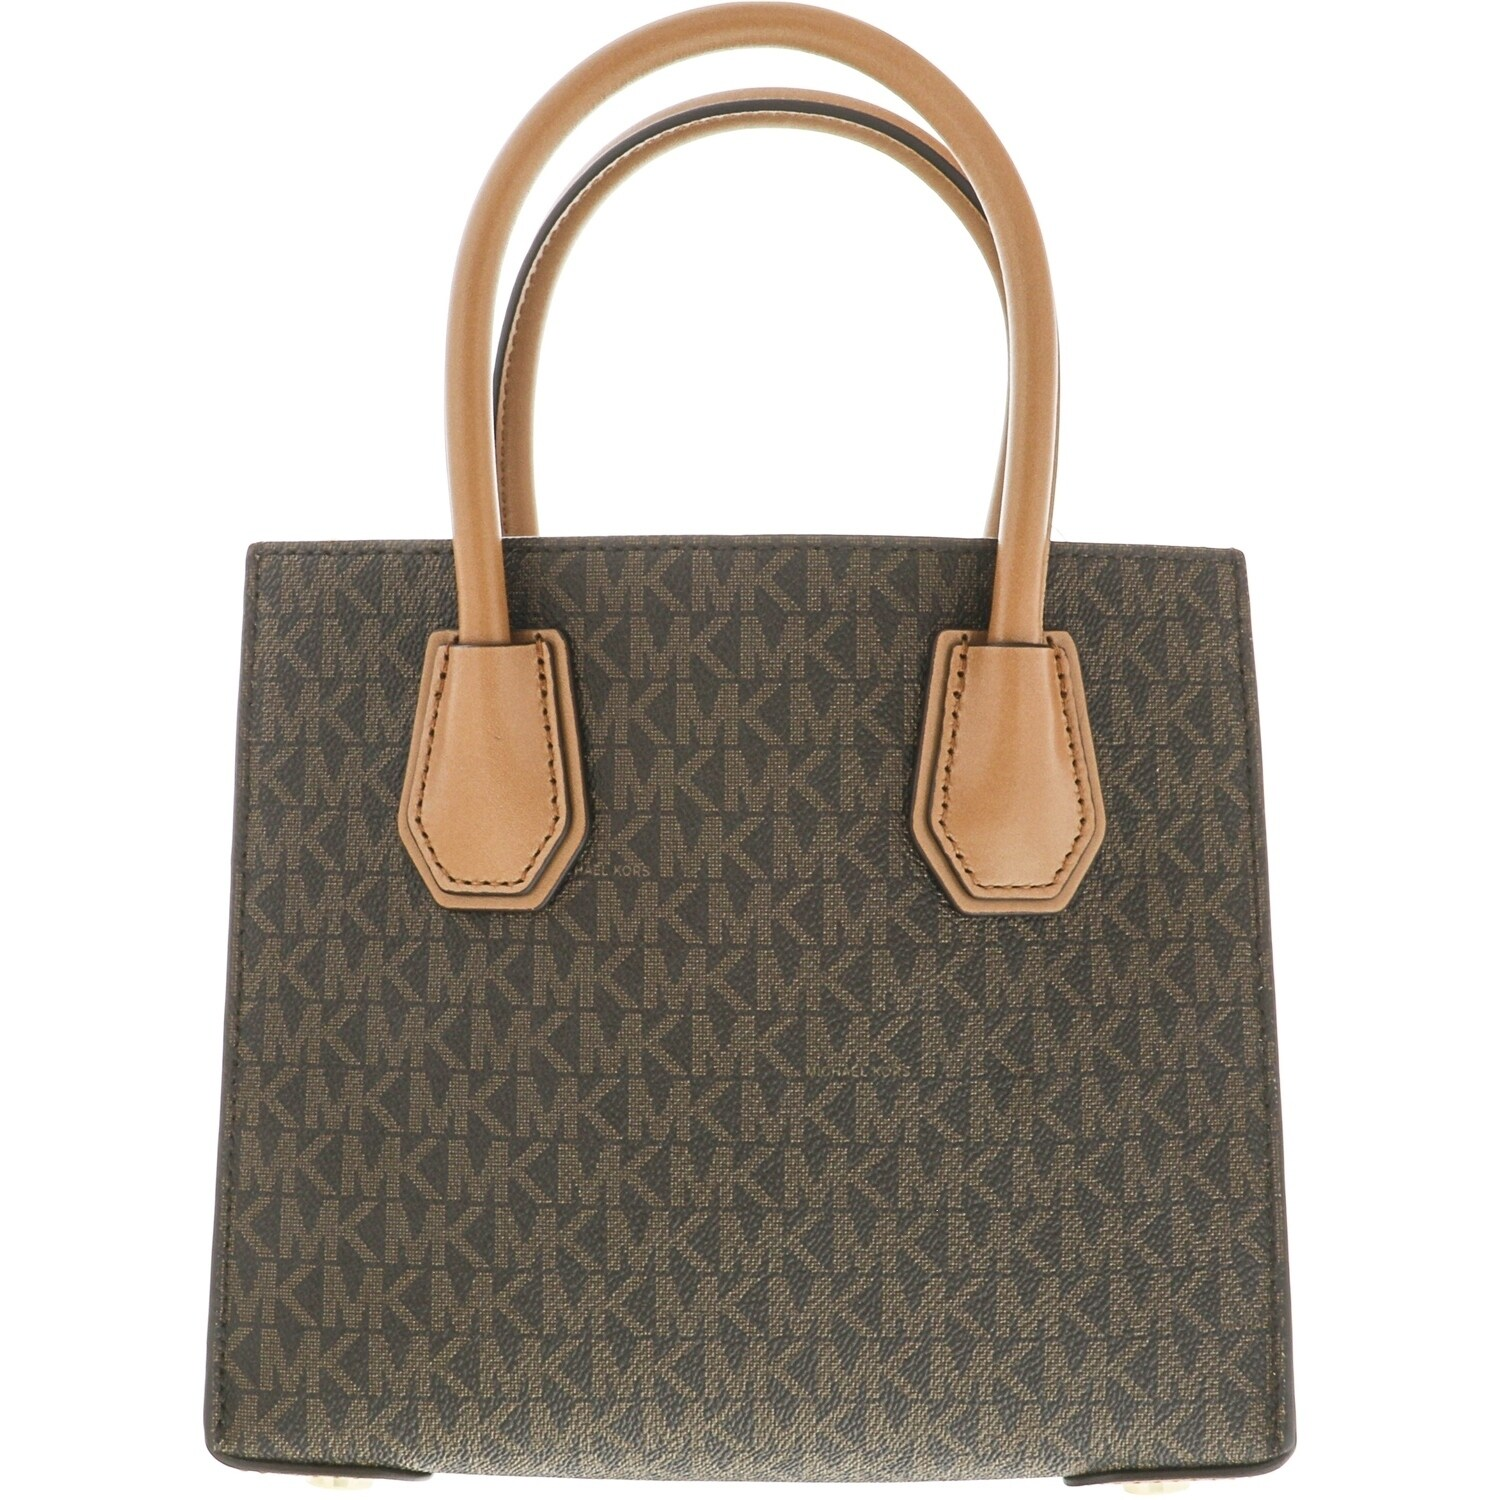 59ee6cced9cf Shop MICHAEL Michael Kors Small Brown Stud Mercer Tote - On Sale - Free  Shipping Today - Overstock - 21861712